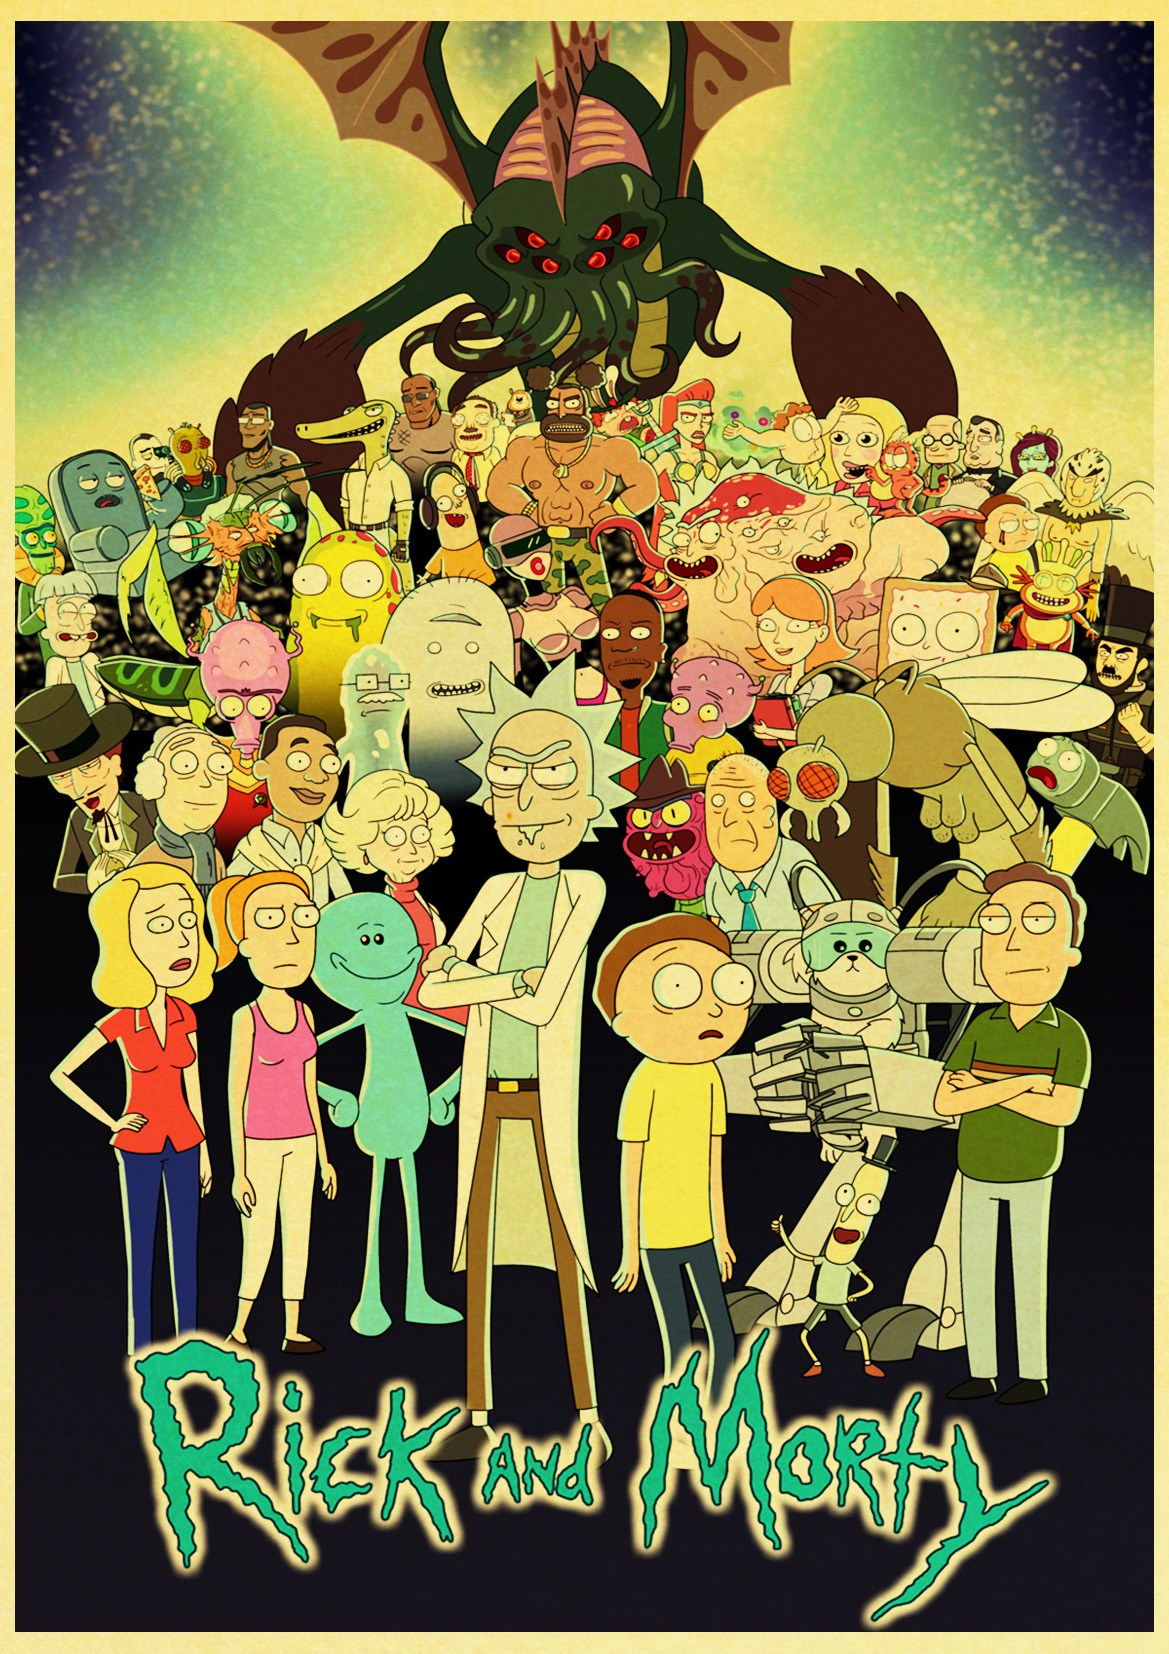 Cartoon Poster  Rick And Morty Retro Posters Kraft Wall Paper High Quality Painting For Home Decor Wall Stickers